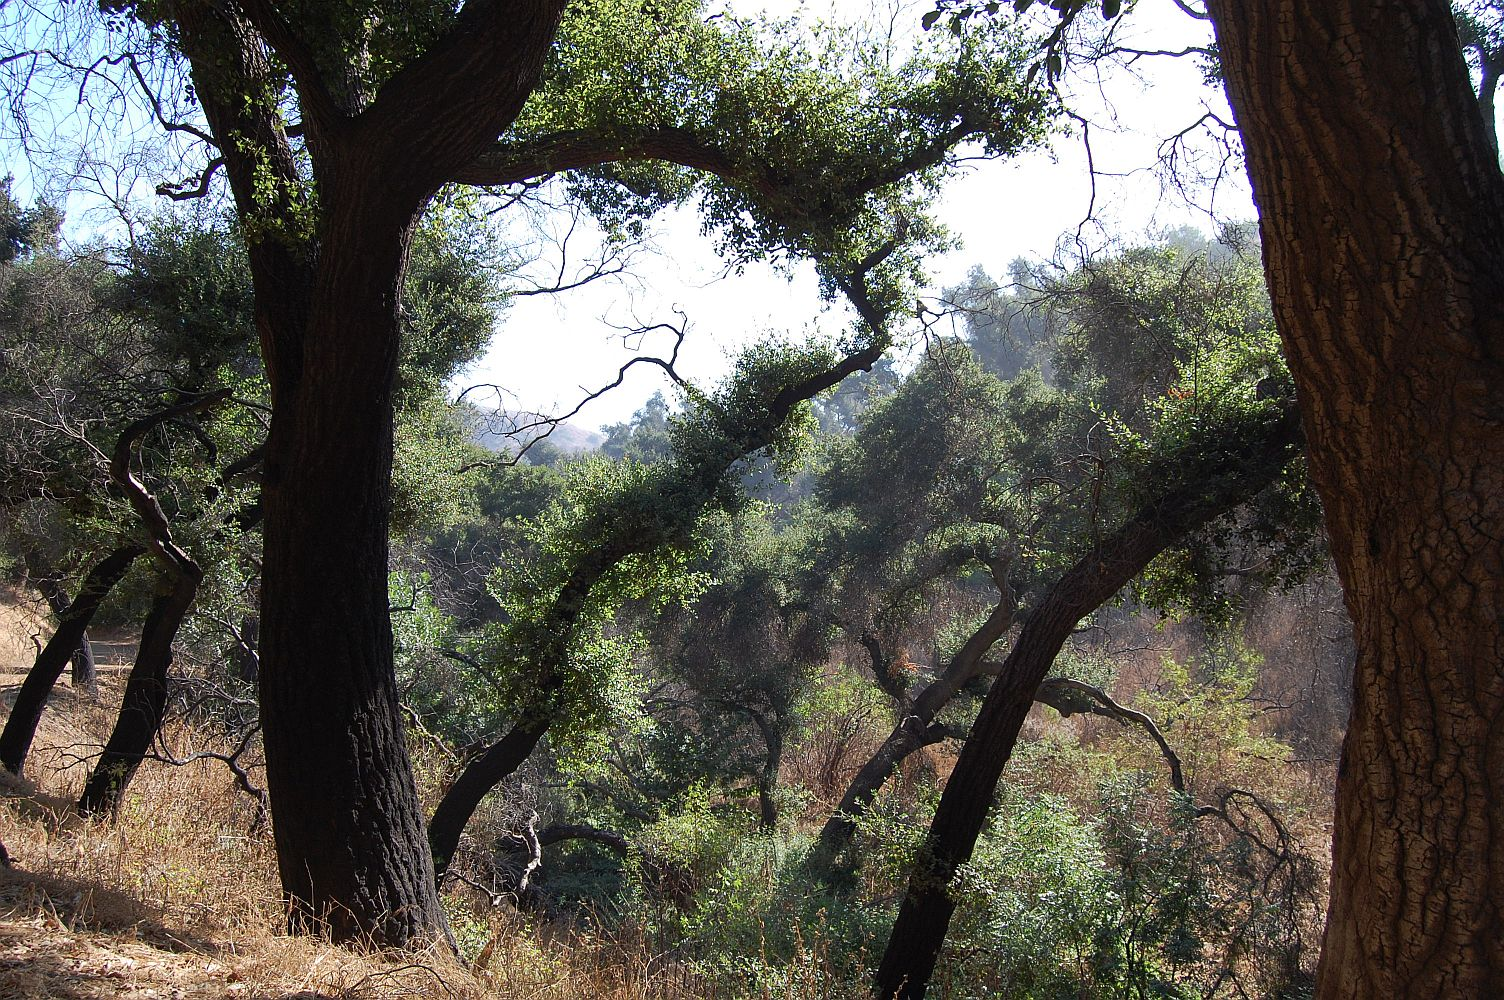 55374-Chino Hills State Park oak trees.jpg